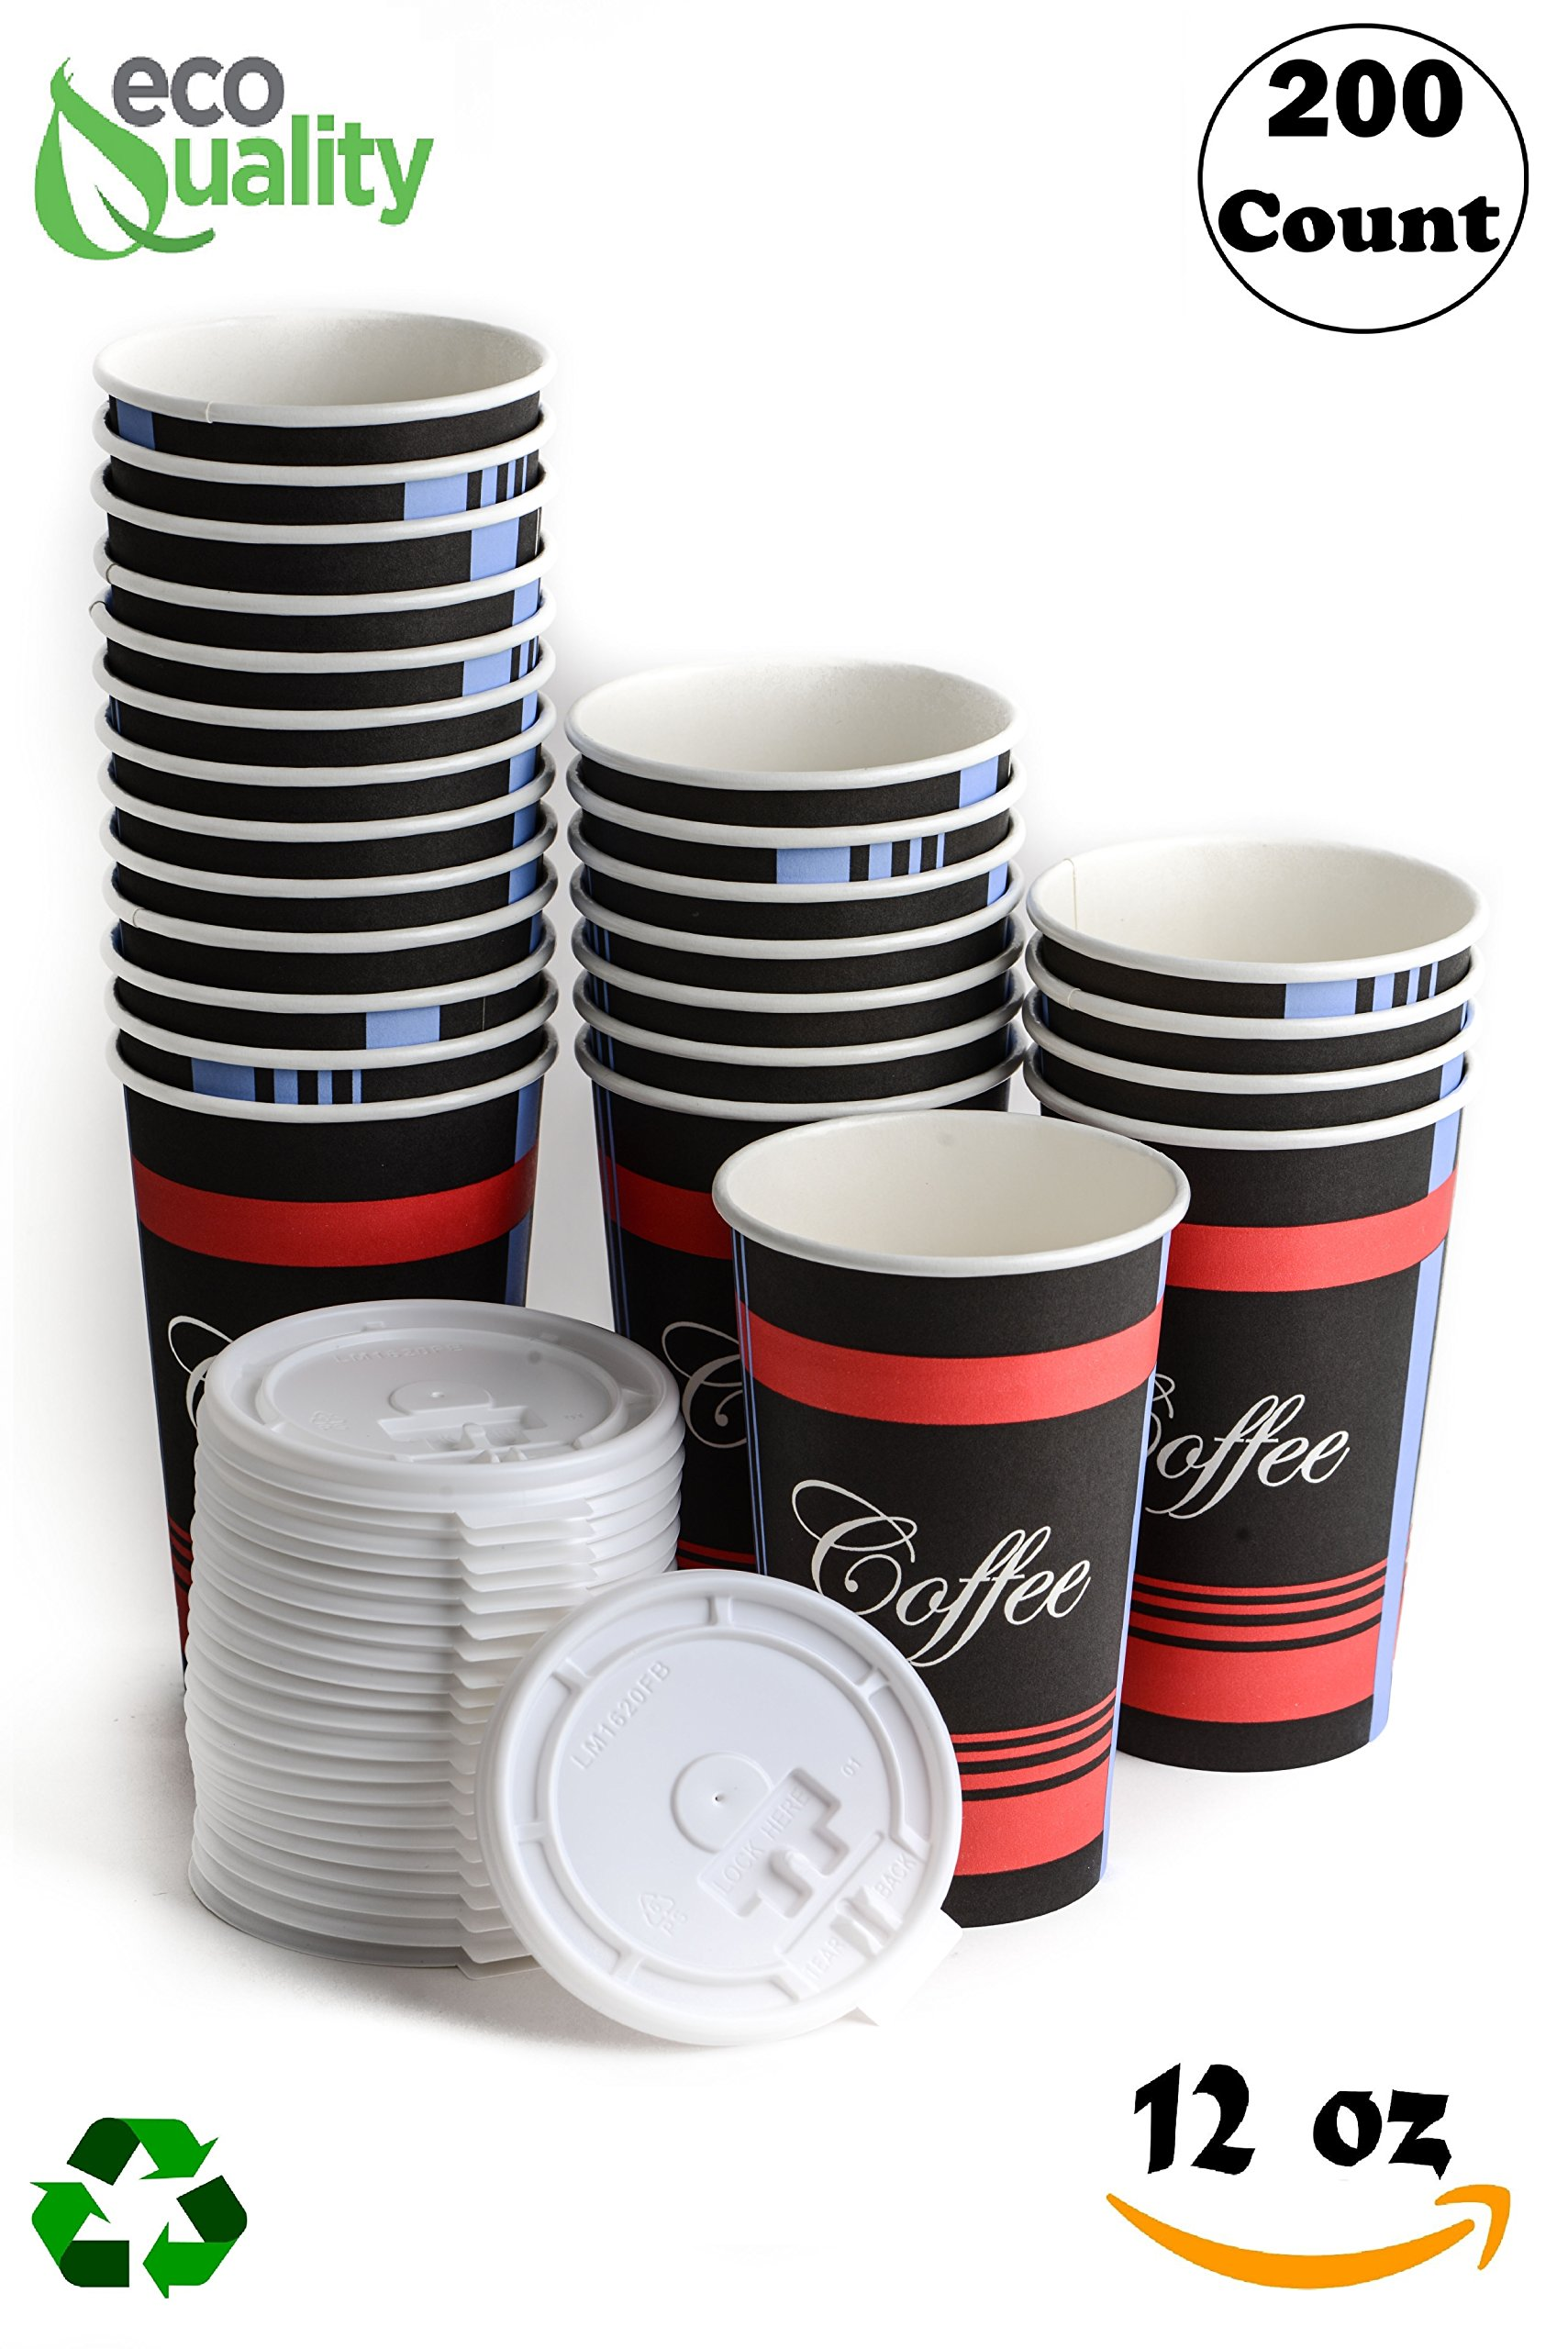 Restaurant Grade 12 Oz Paper Coffee Cups with White Lids - 200 Count By EcoQuality Disposable Cups For Hot and Cold Drinks. Great For Tea, Soda, Shops, Cafes, and Concession Stands.